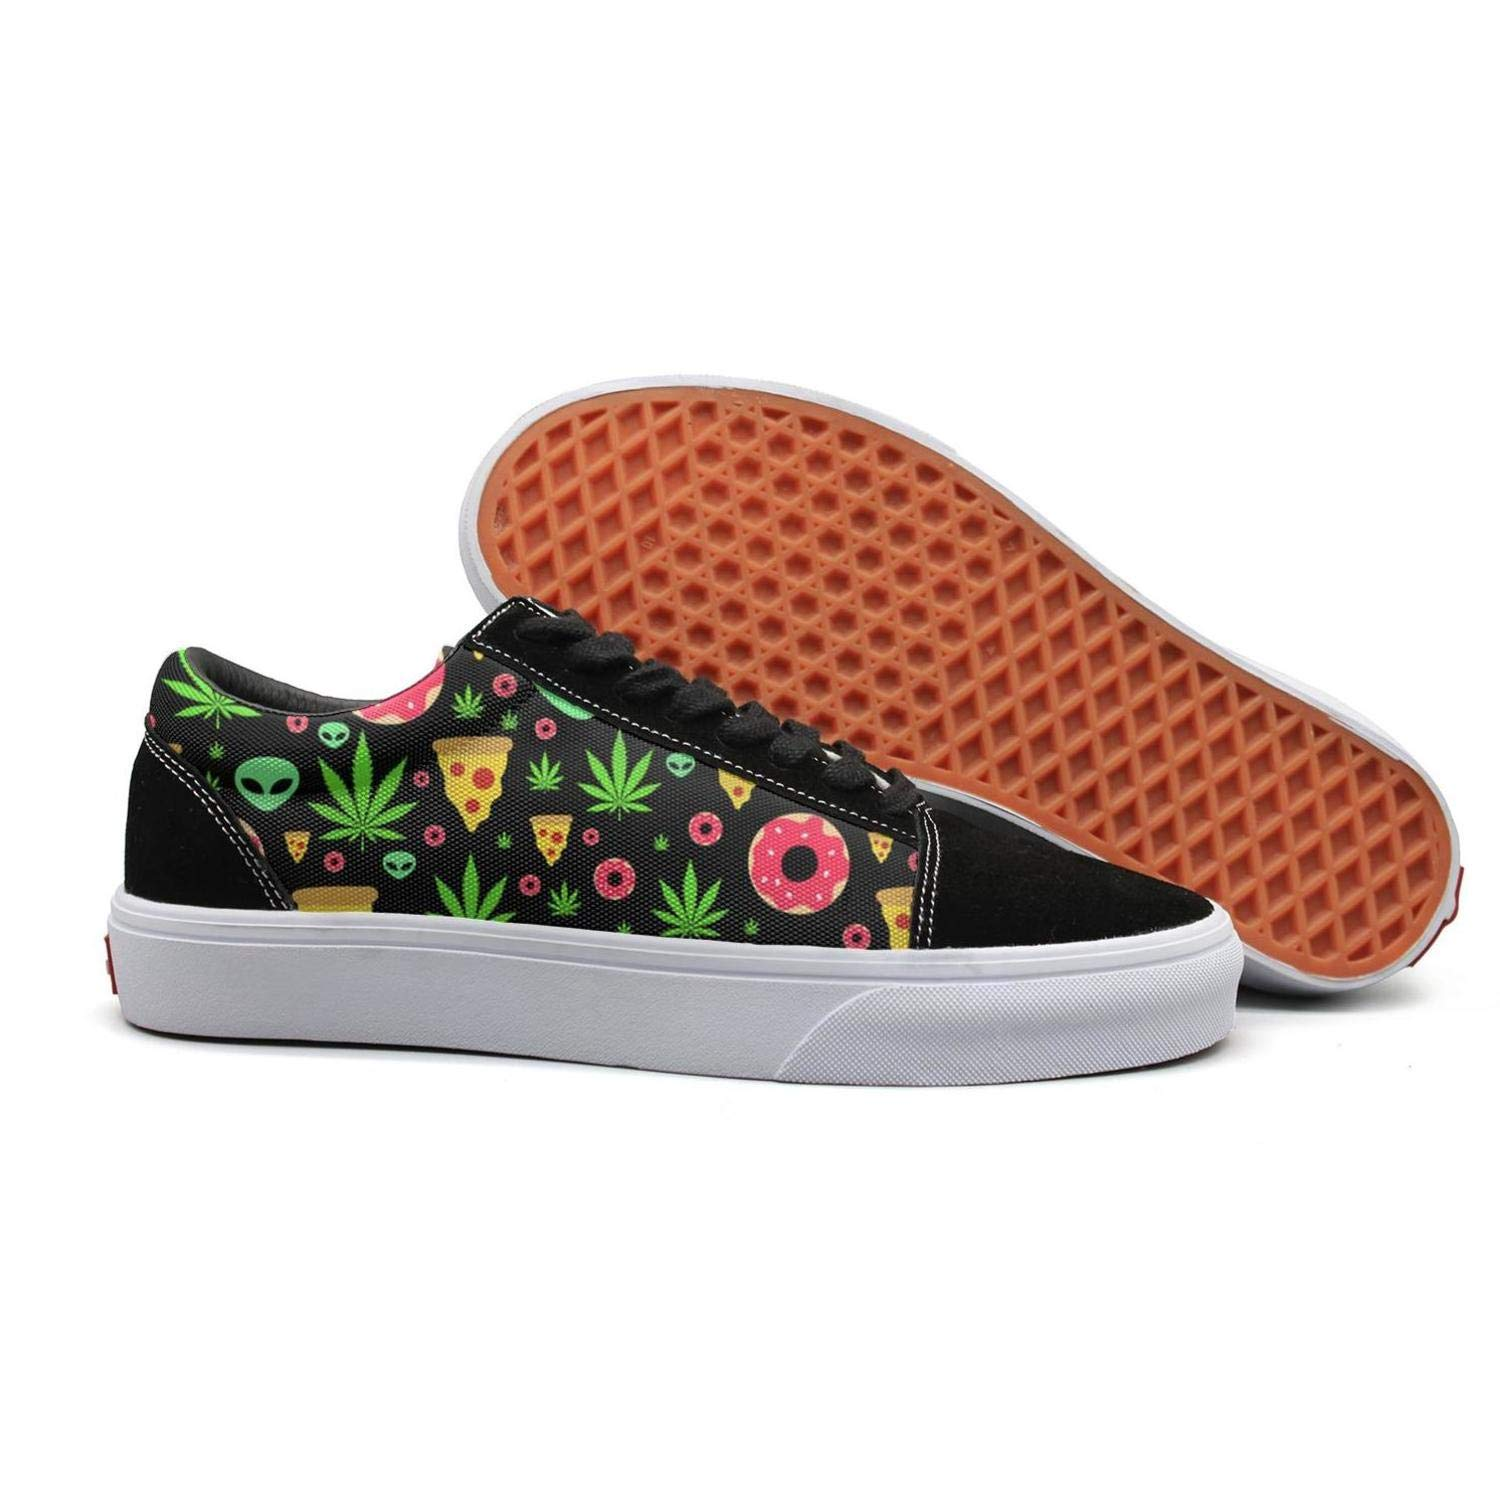 Weed Marijuana Alien 5.5 B(M) US Uieort Weed Marijuana Alien Donut Womens Lace up Loafers shoes Fashion